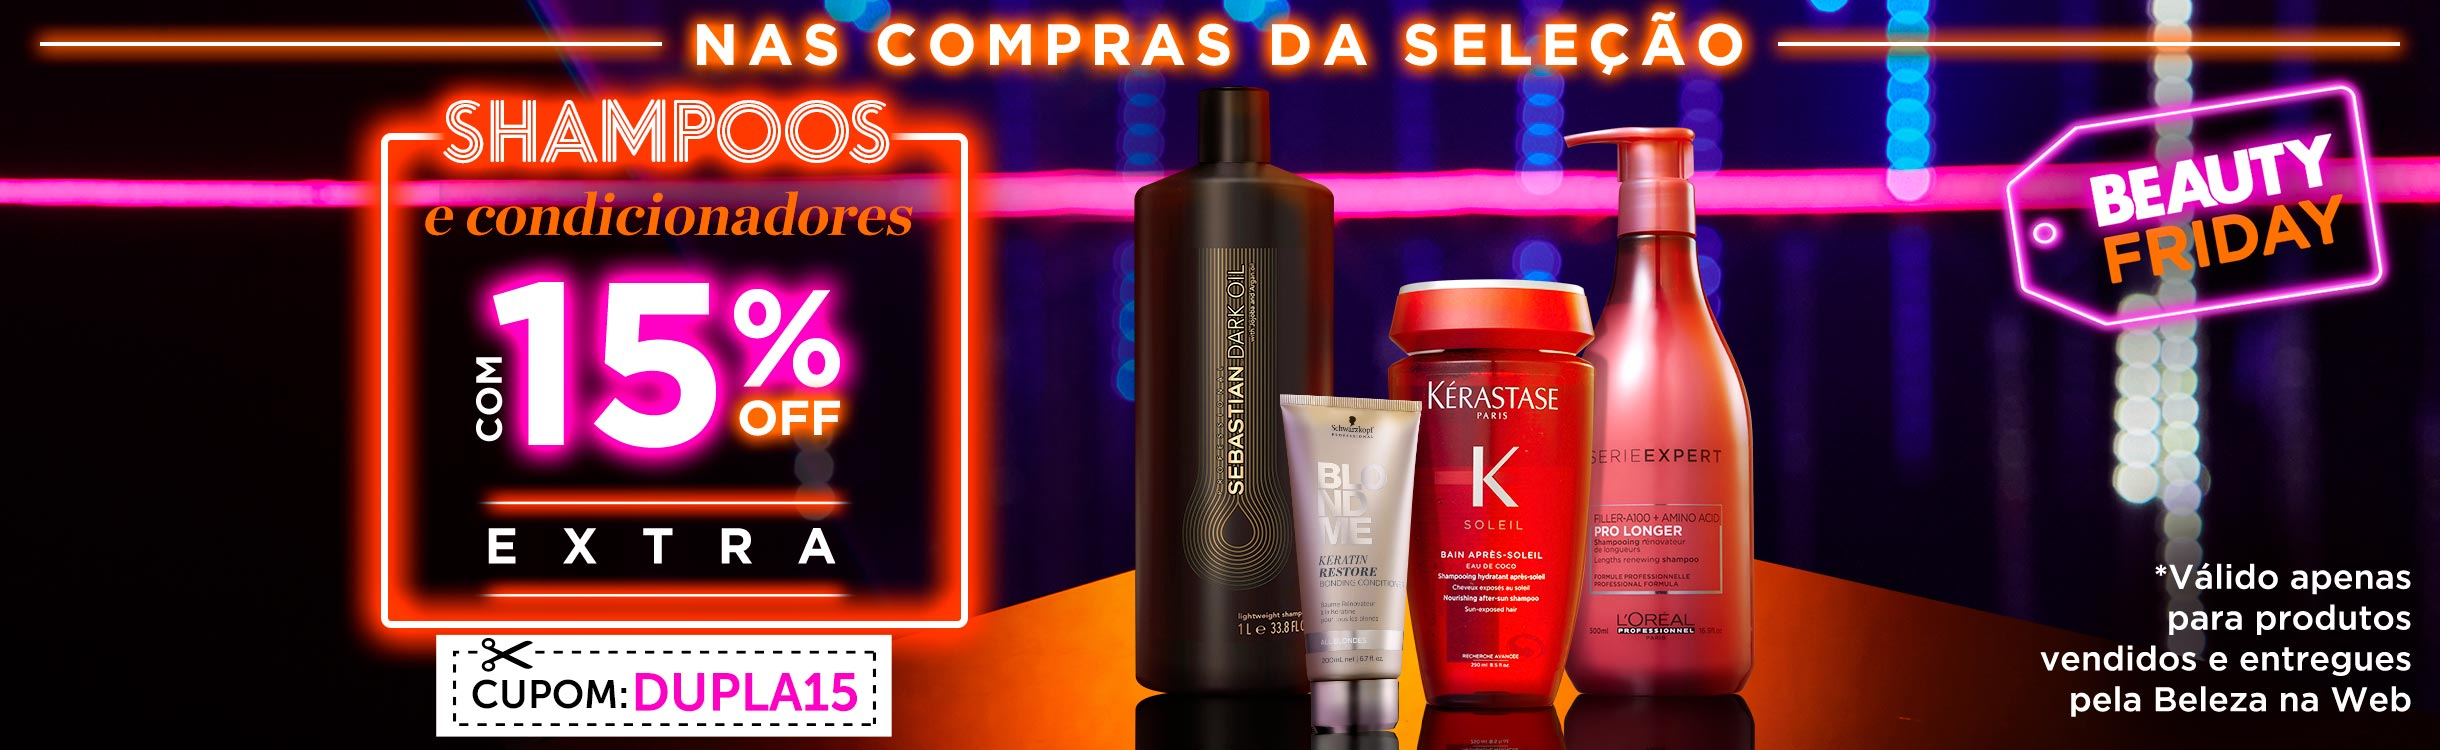 Beauty Friday | Shampoo + Condicionador com 15% extra